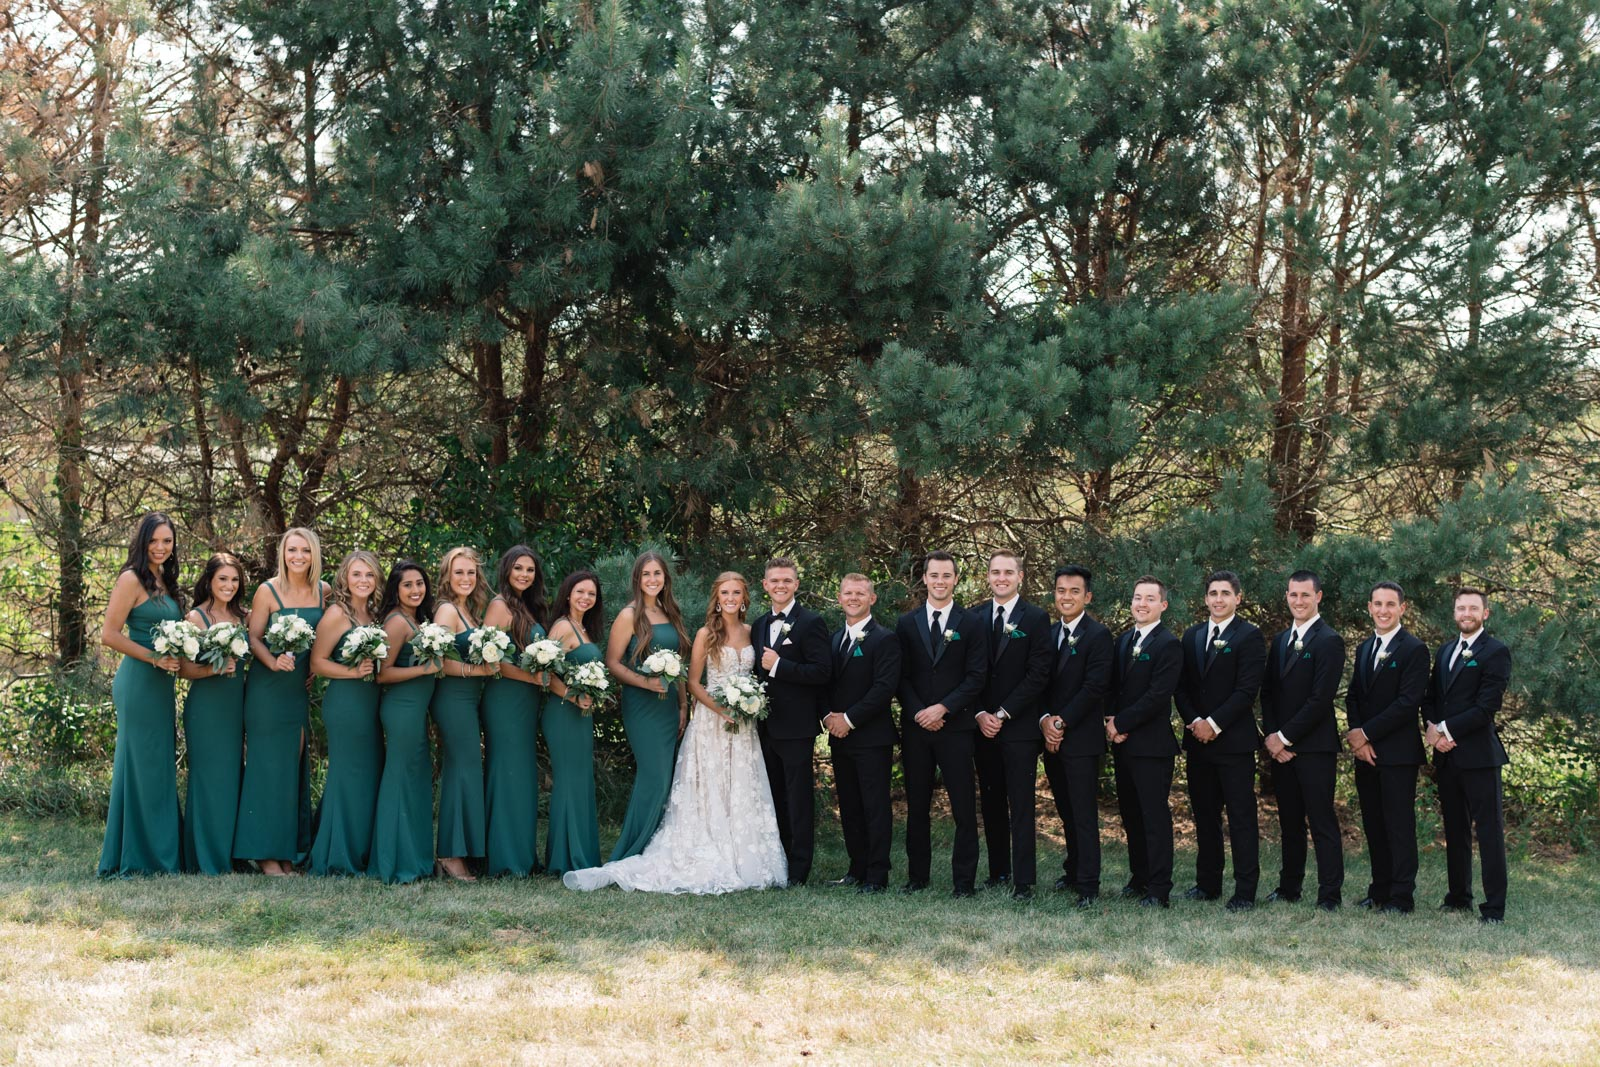 bridal party green bridesmaids dresses and black tuxes koru berry farm wedding venue